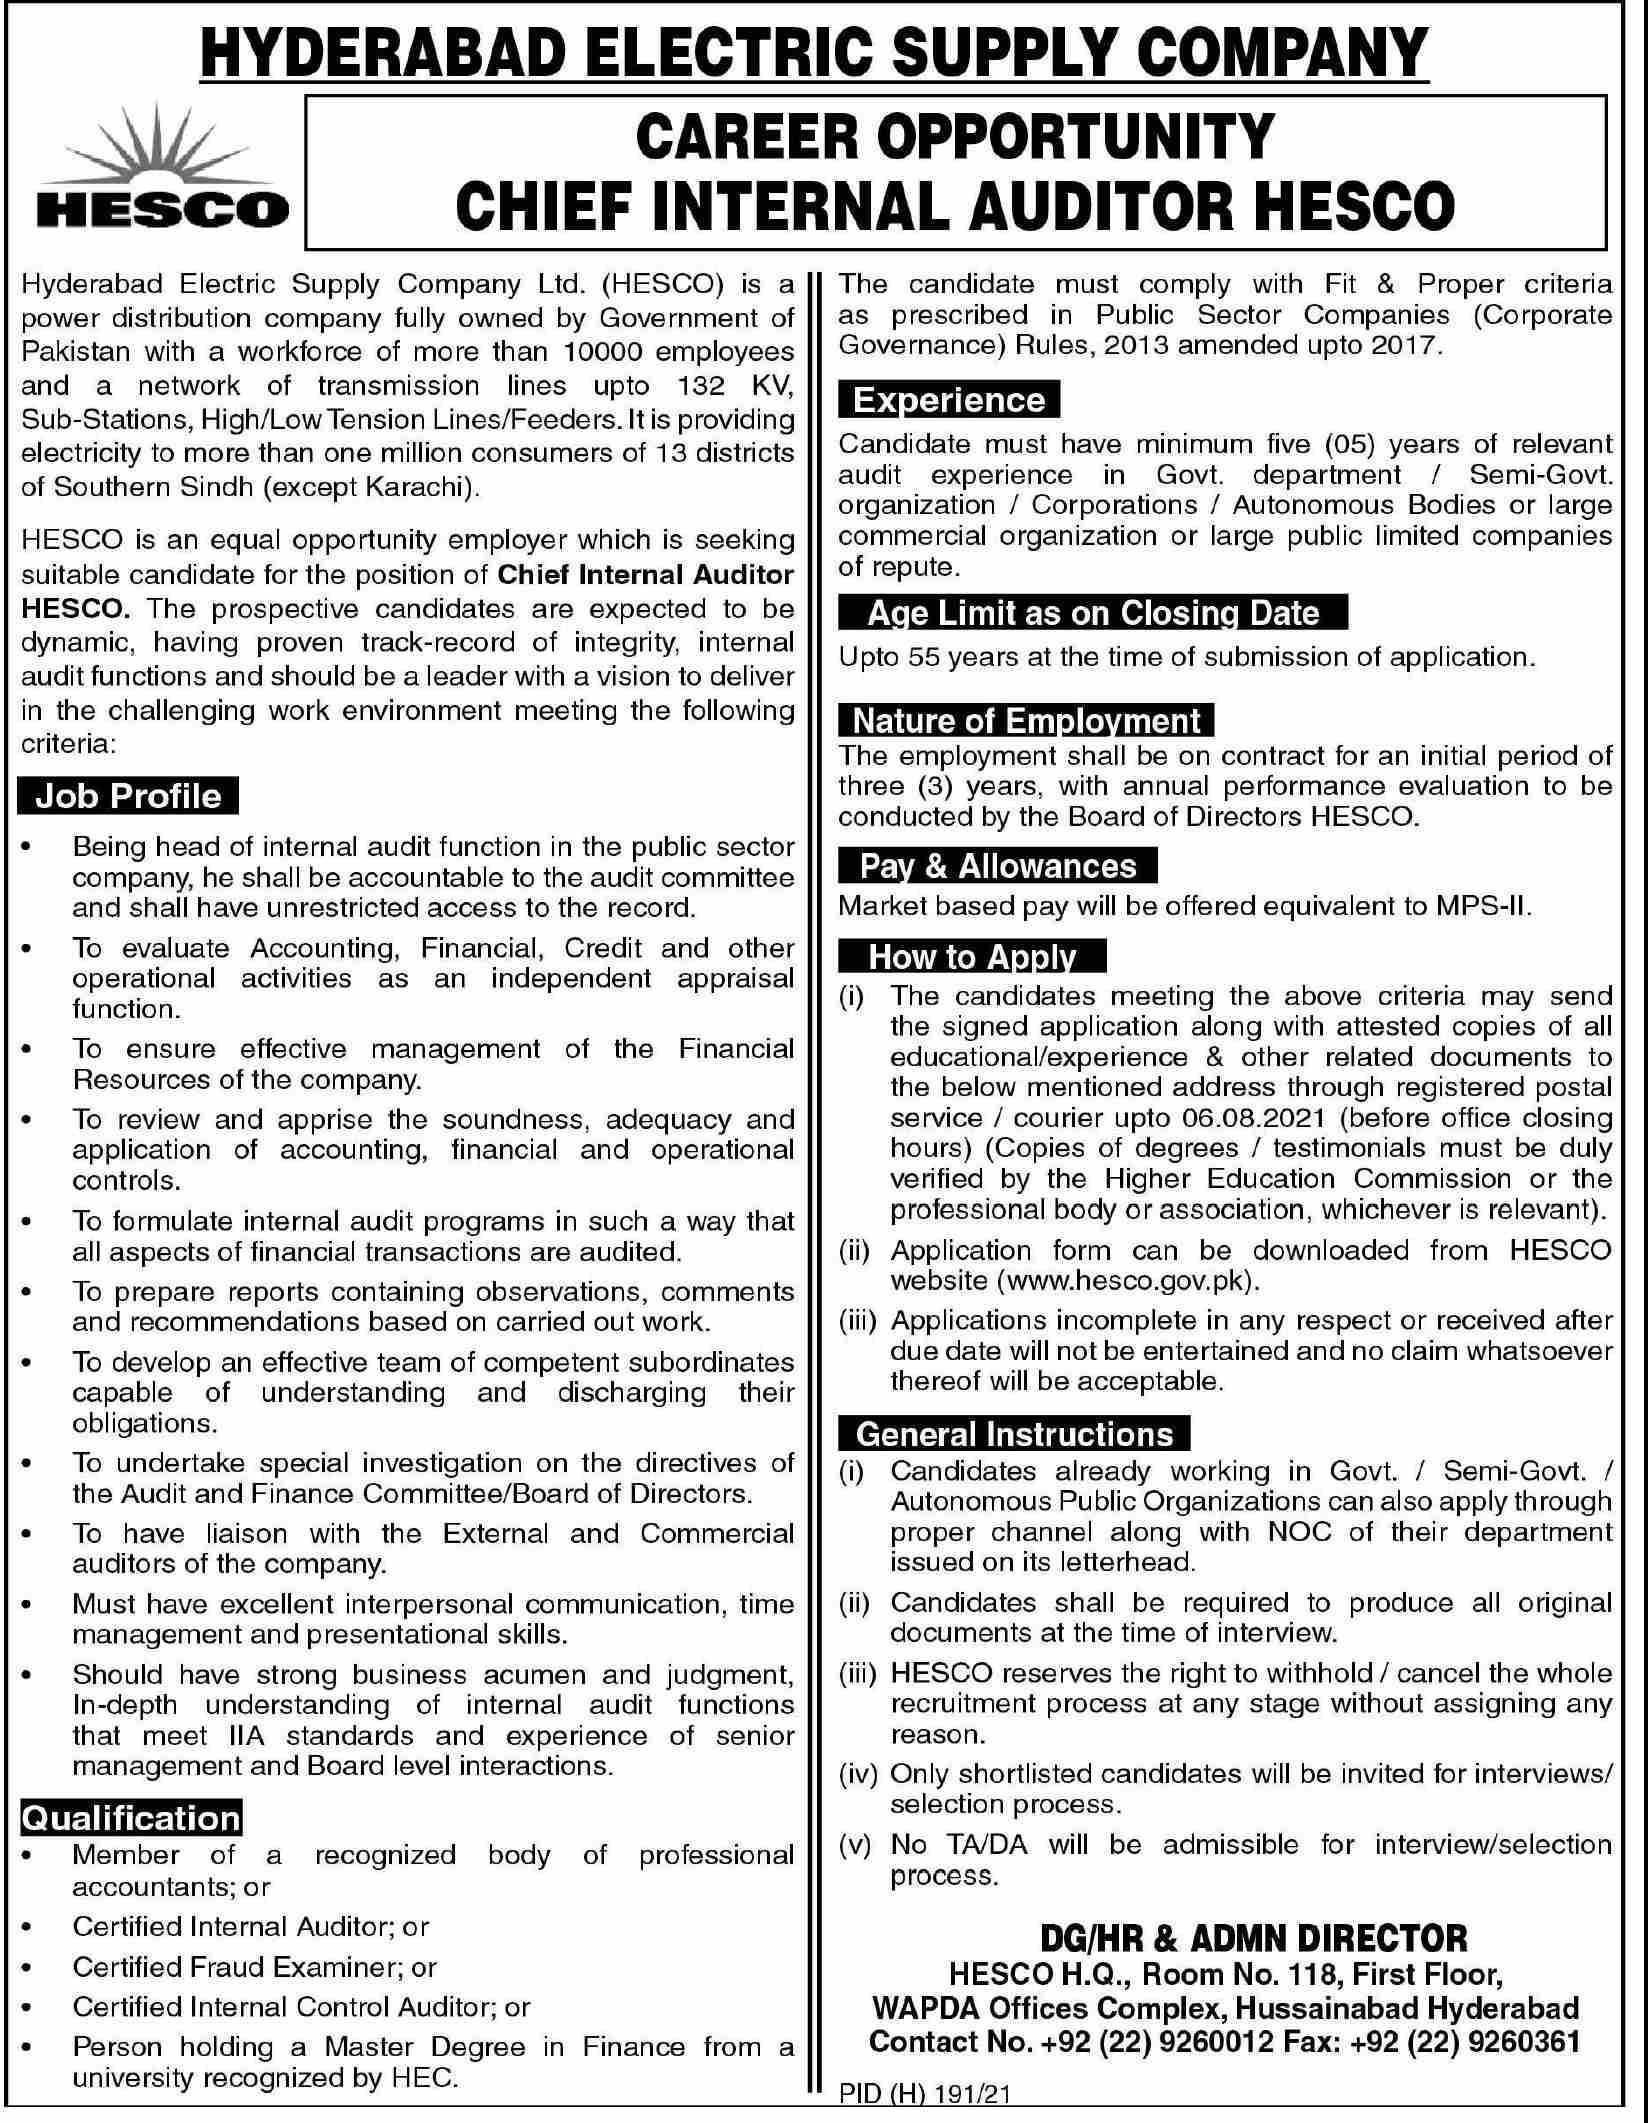 Jobs in Hyderabad Electric Supply Company HESCO July 2021